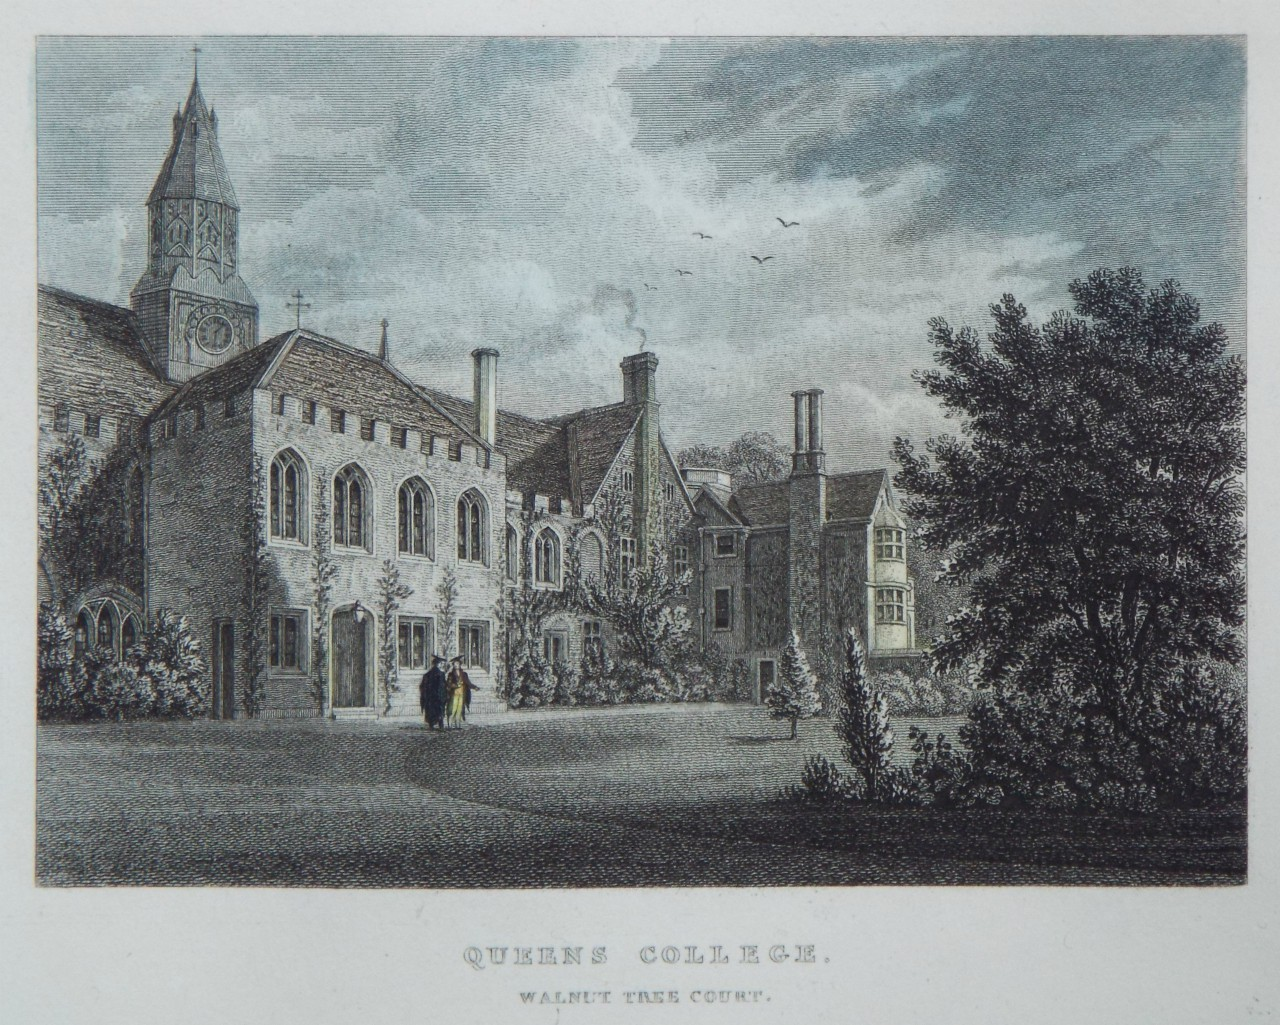 Print - Queens College. Walnut Tree Court.